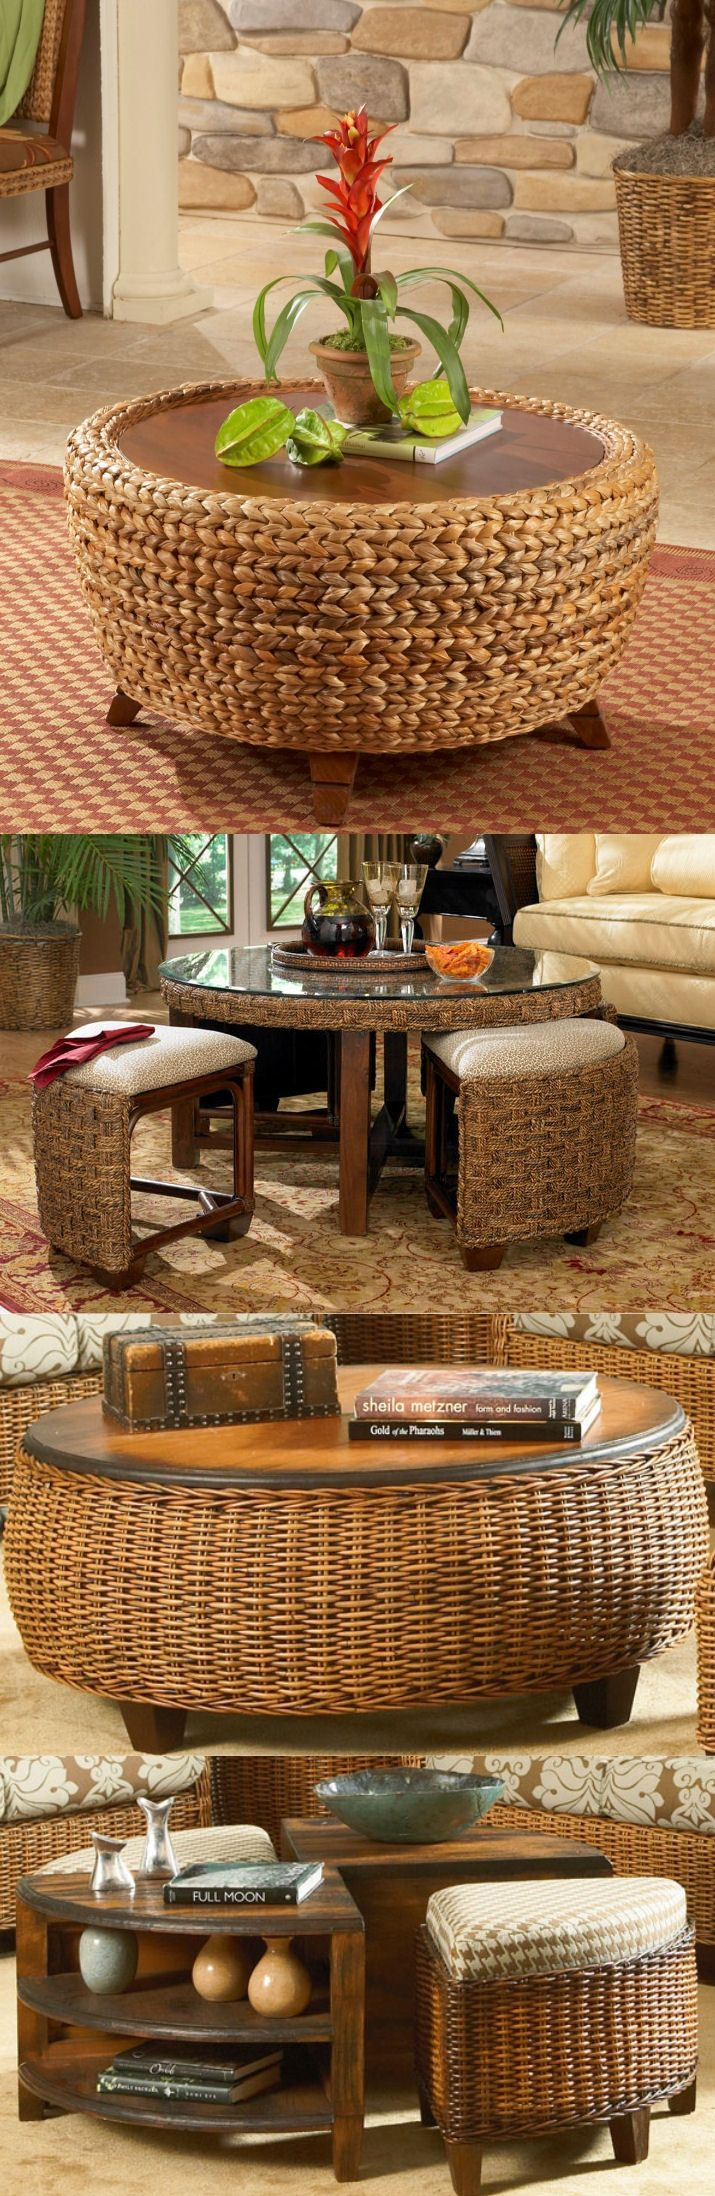 Round Wicker Coffee Tables. Tables With Stools Make Great Game Tables For  Family And Sunrooms Part 25